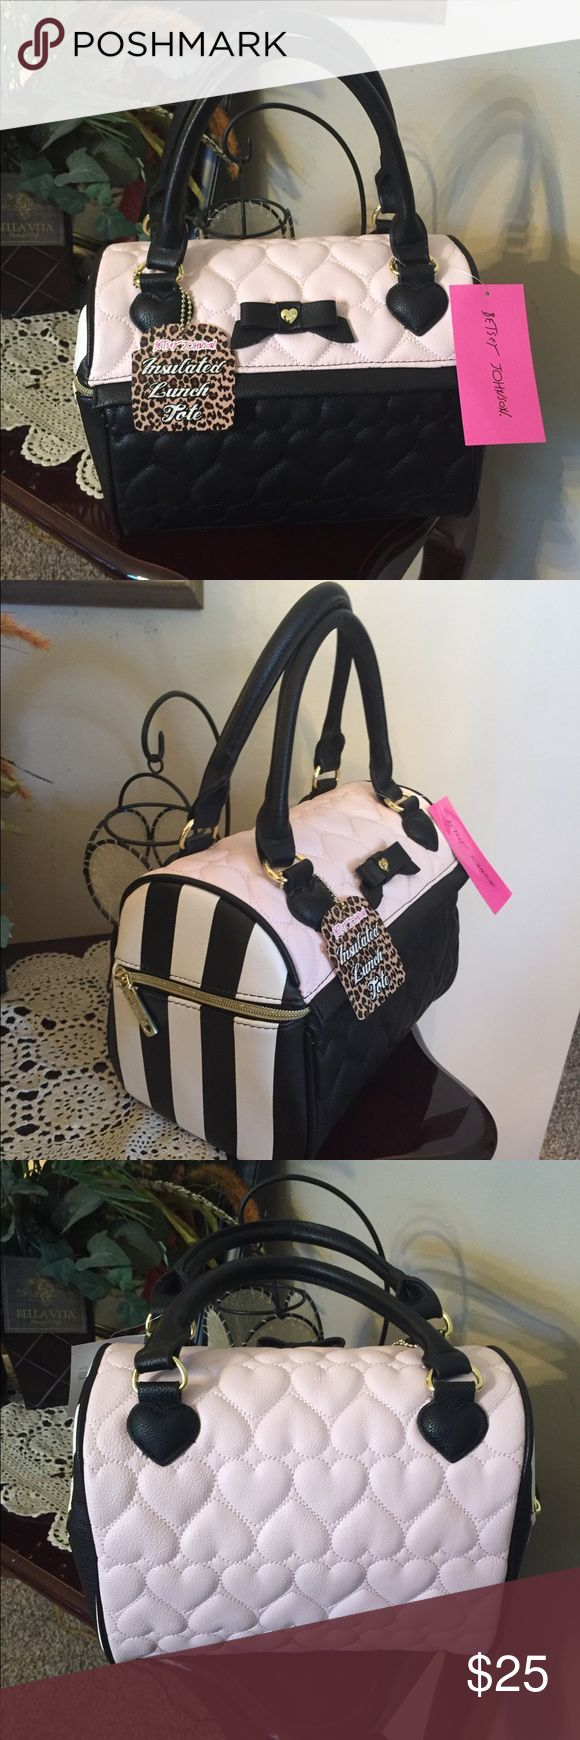 BETSEY JOHNSON insulated Lunch Tote🌸 New beautiful Betsey Johnson insulated lunch Tote. Pink/black color, with zipper closure. NWT Betsey Johnson Bags Totes